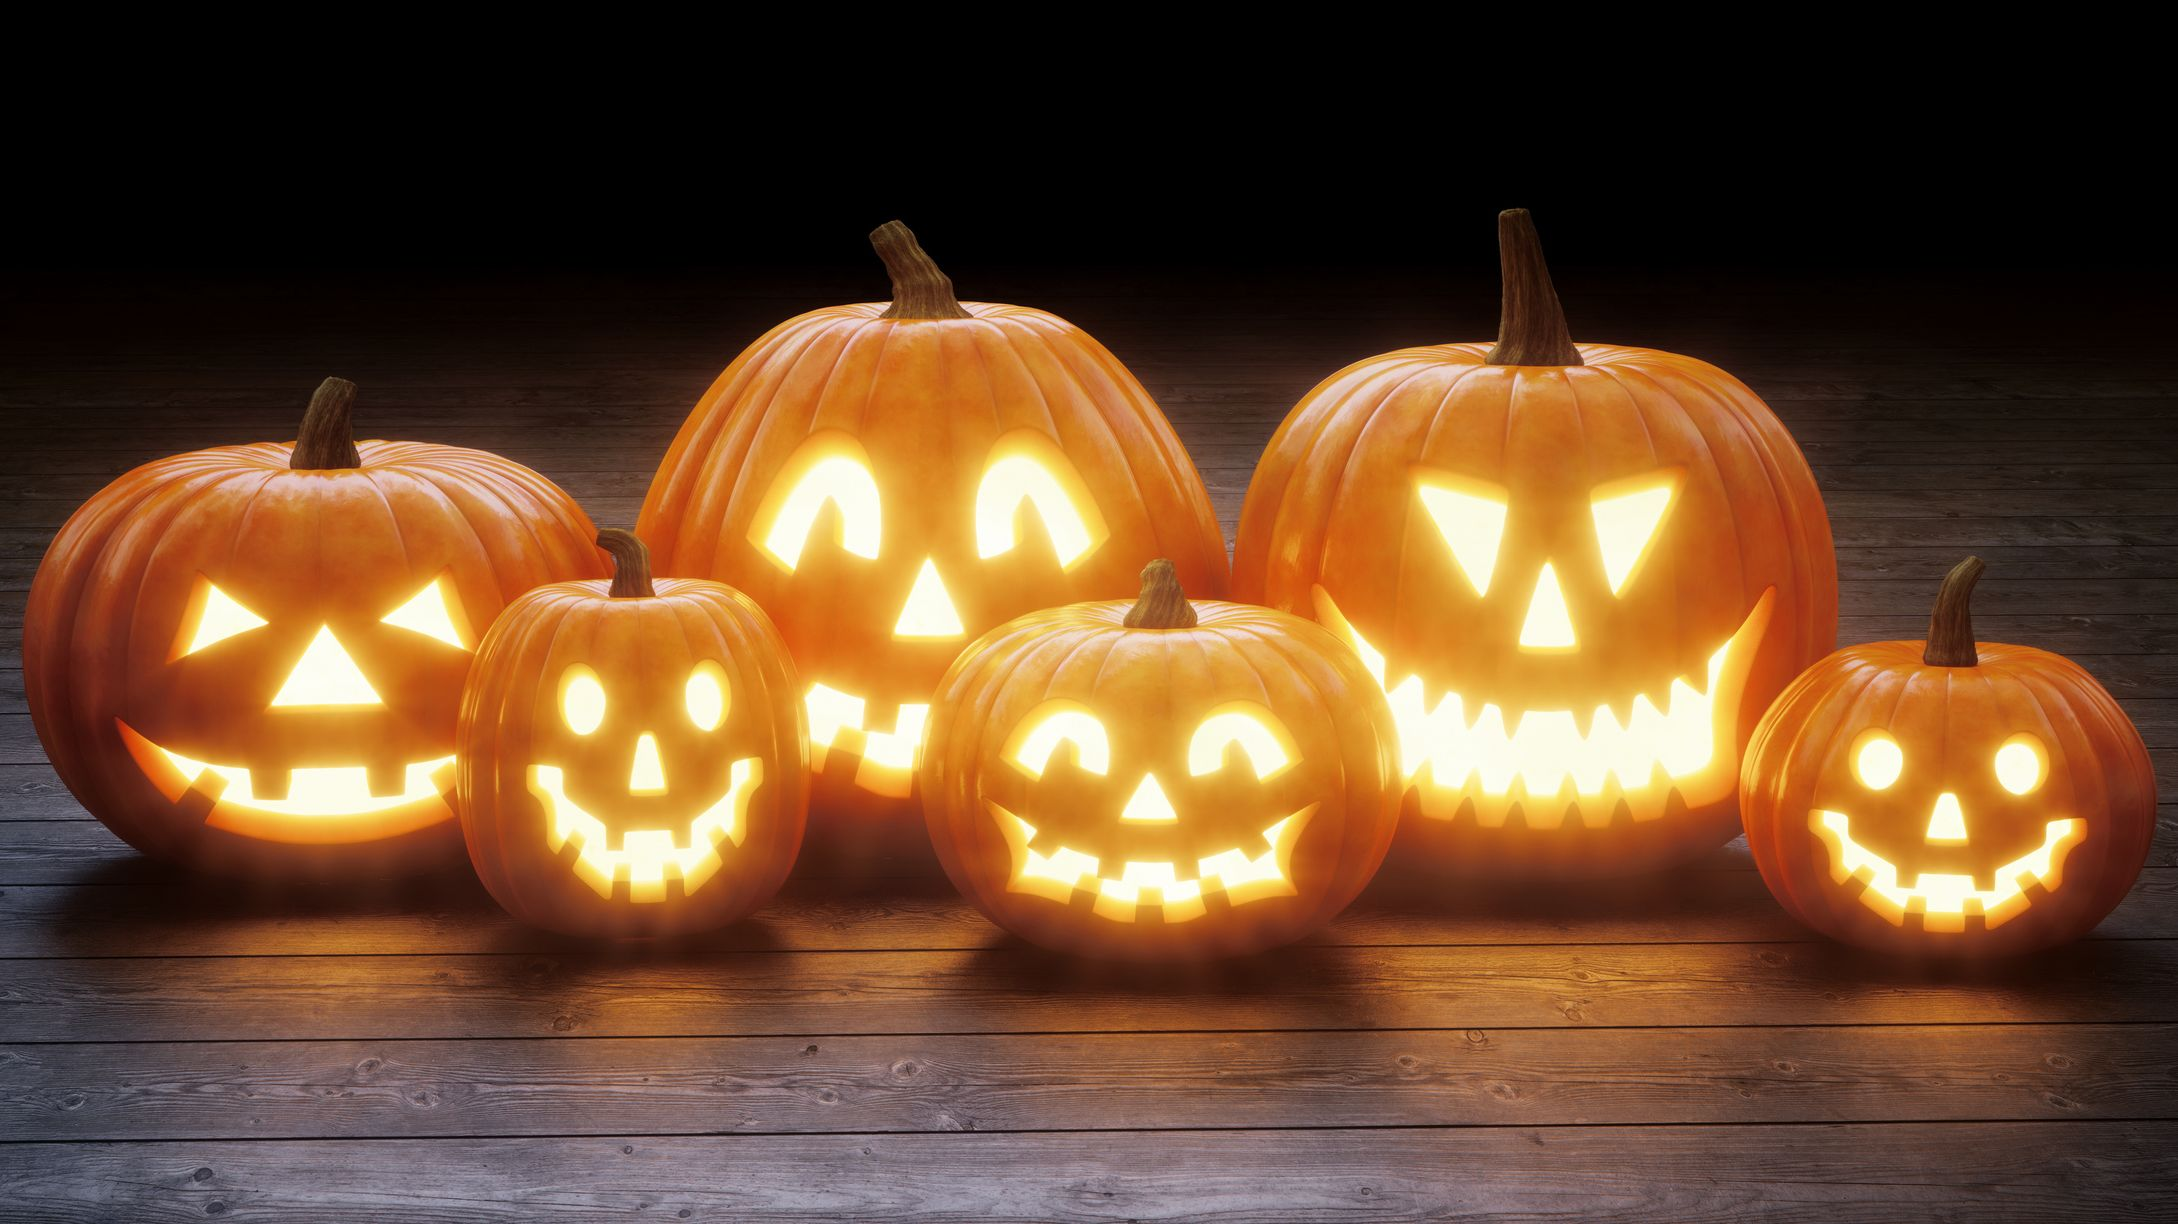 What's the Origin of Jack-O'-Lanterns? | Mental Floss